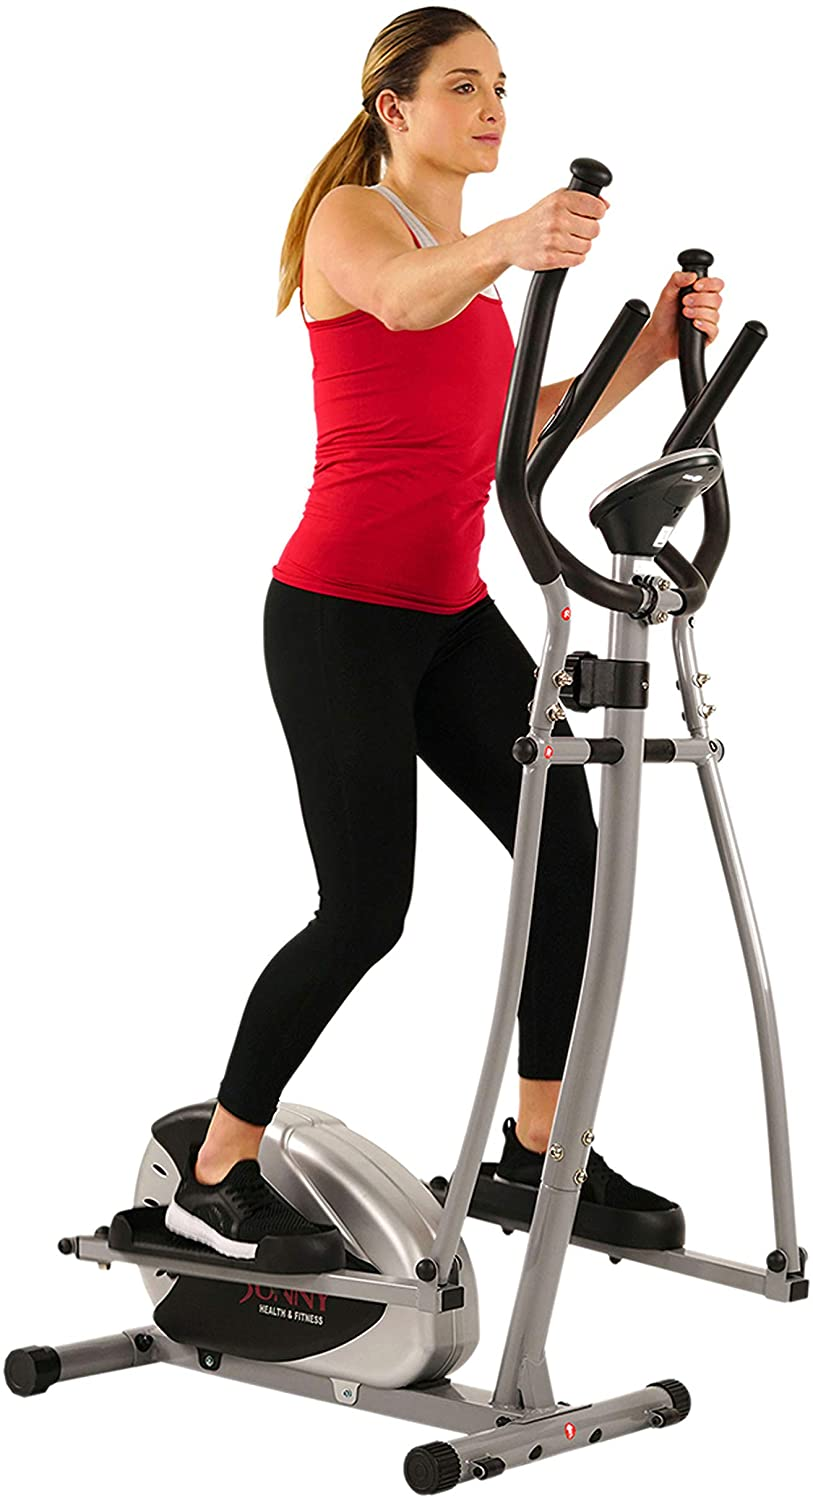 A Simple Elliptical Buying Guide, All You Need To Know On Purchasing An Elliptical!